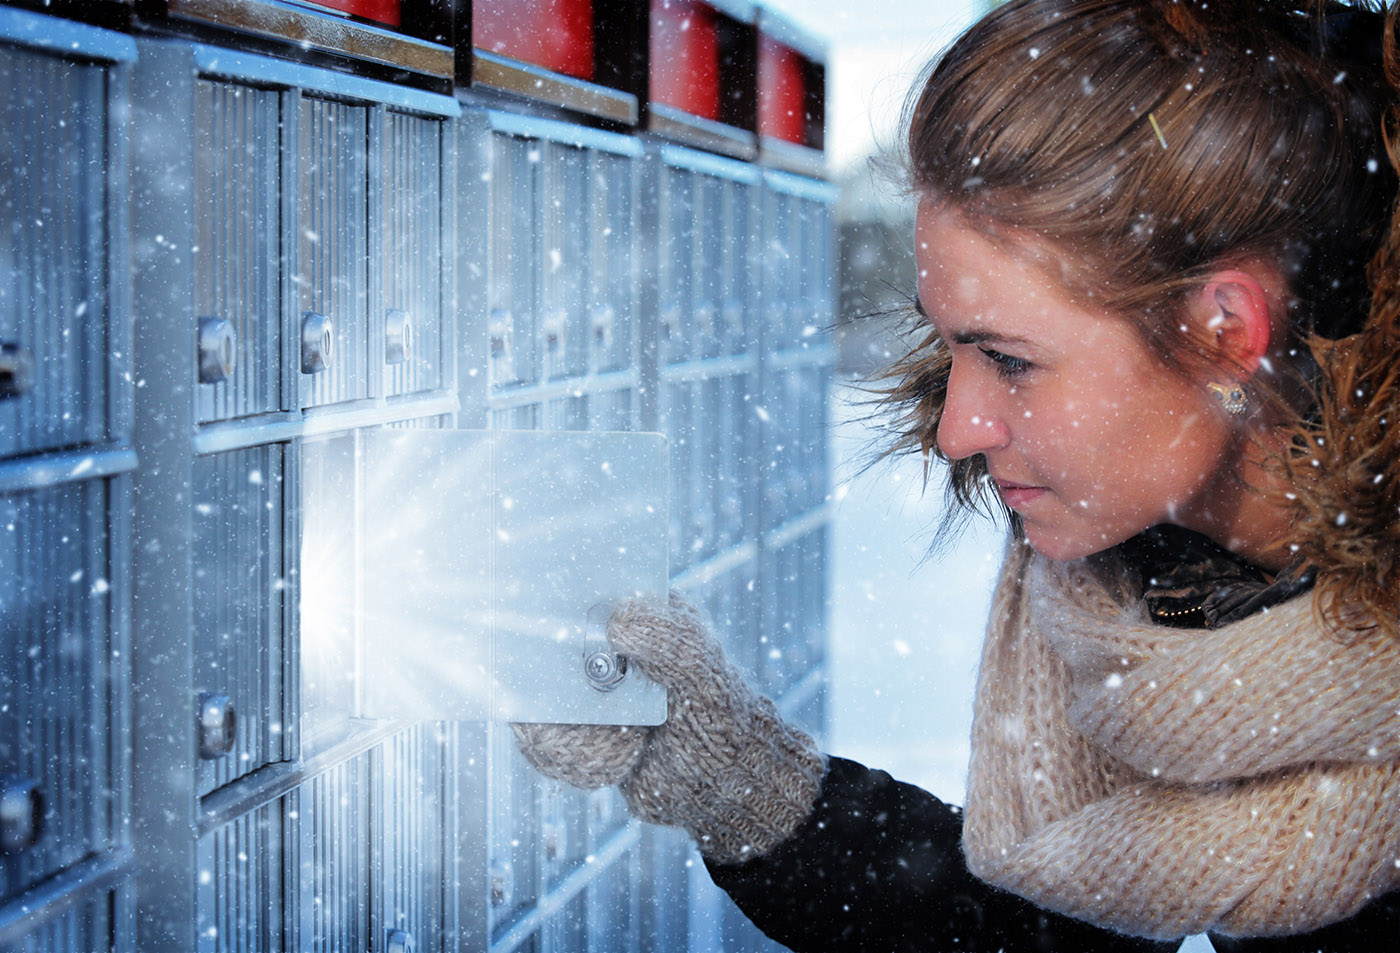 Pretty Woman Looking at Highlighted Mailbox in Winter - Royalty-Free Stock Imagery